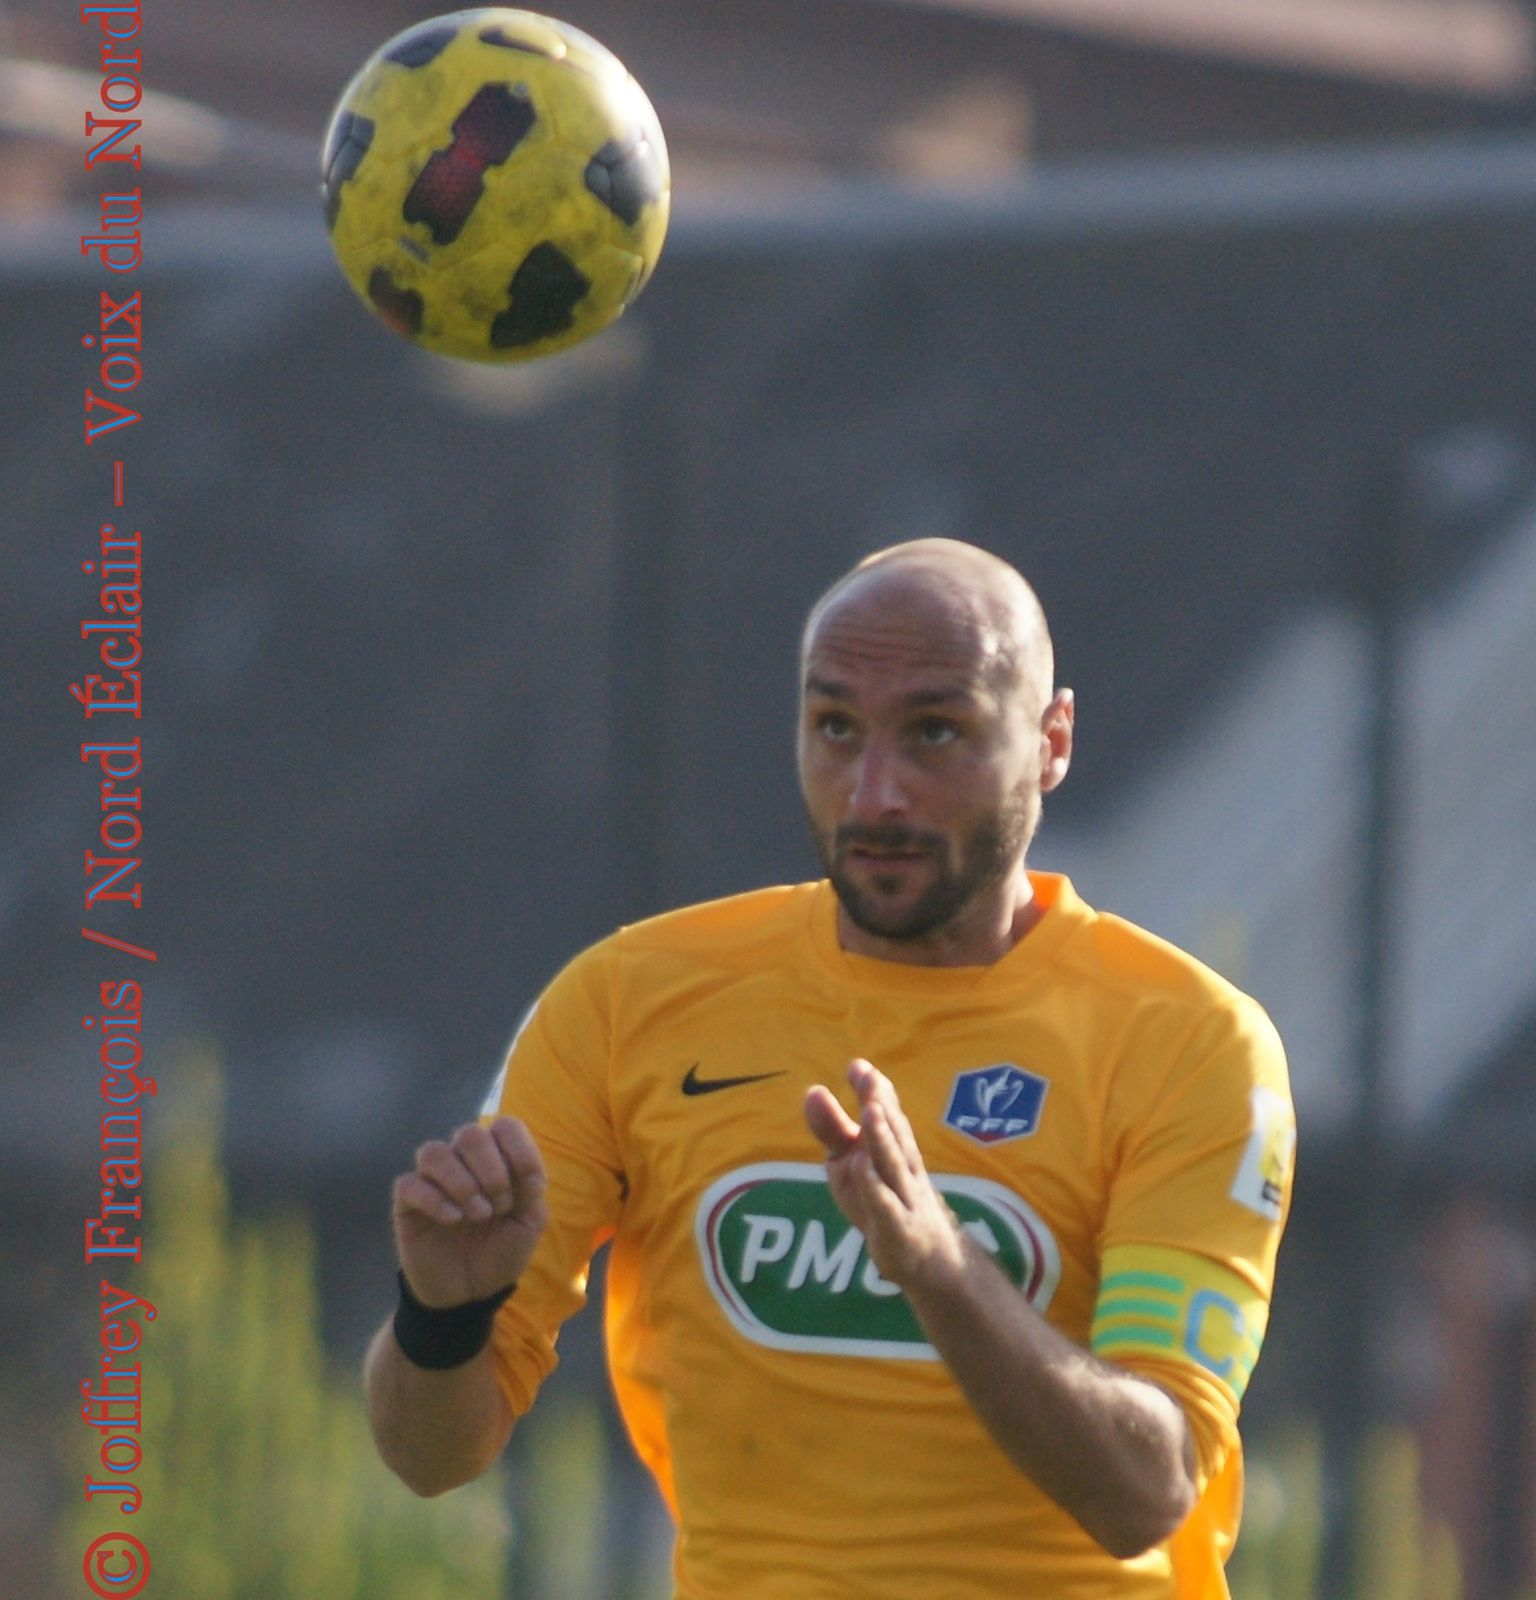 29.09.13 CDF Barbe d'Or - Tourcoing